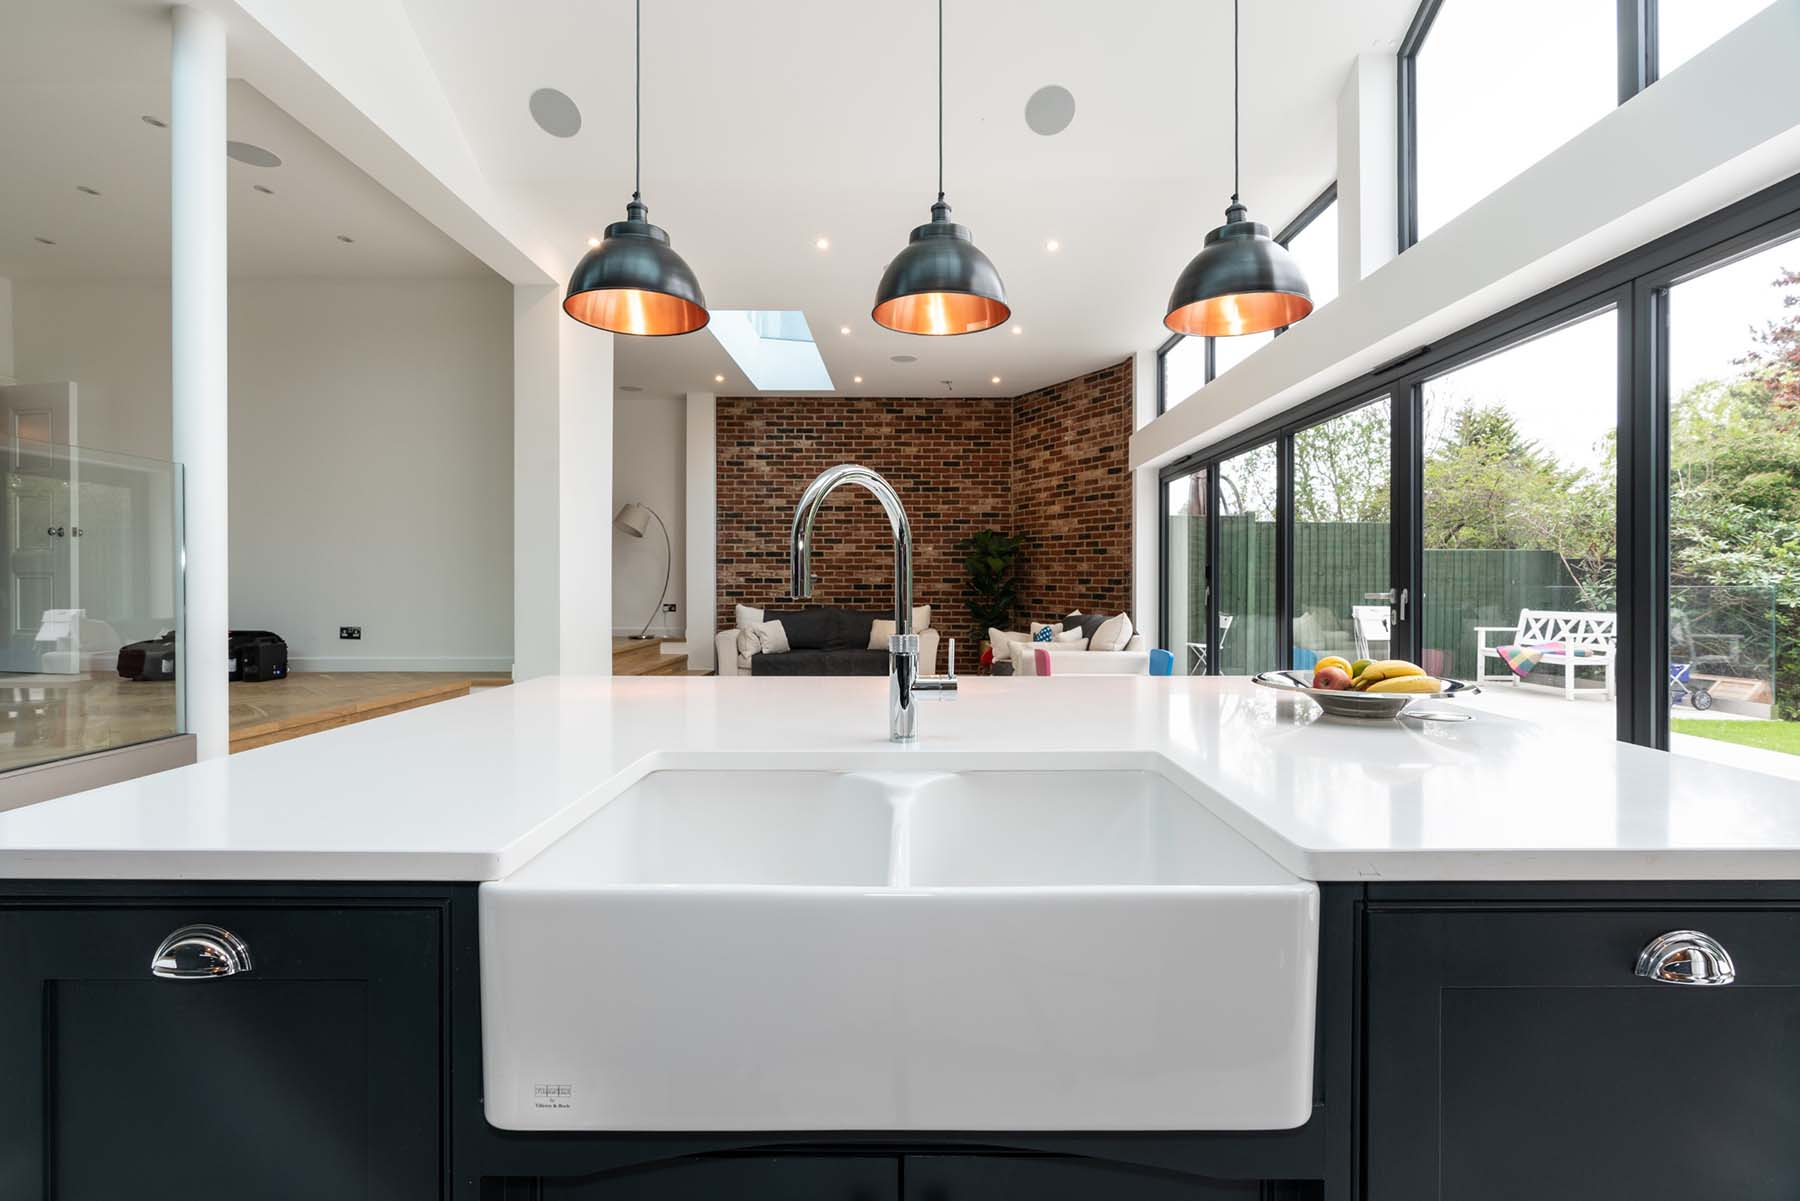 black kitchen cabinets with white countertops high ceilings huge windows red brick wall